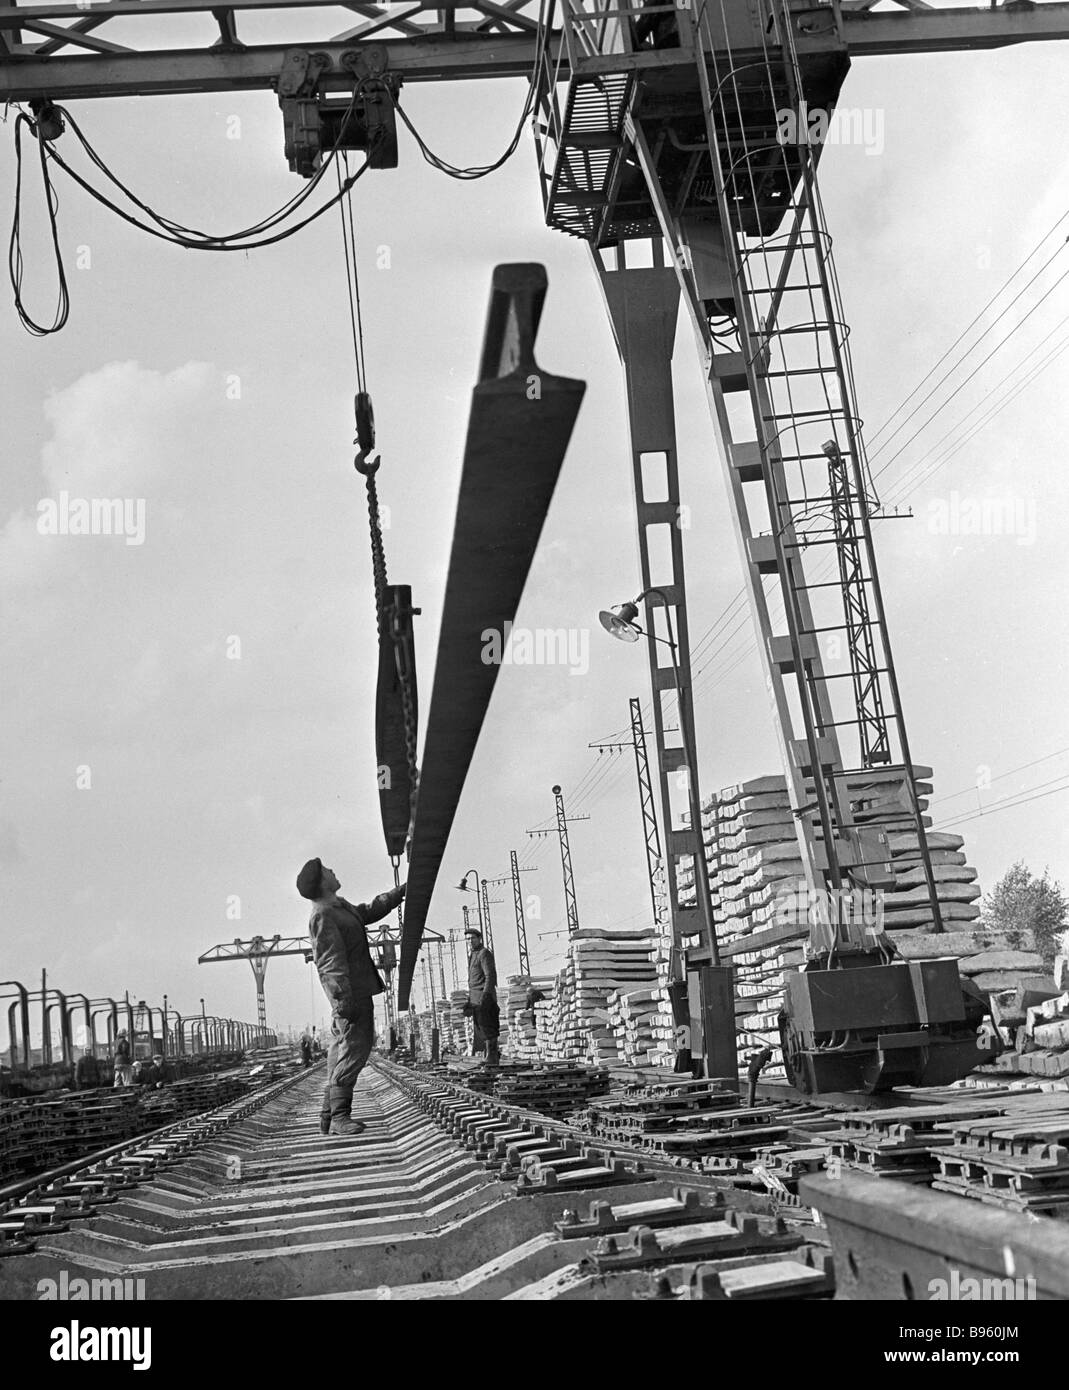 Laying rails on reinforced concrete sleepers on Moscow Railroad - Stock Image